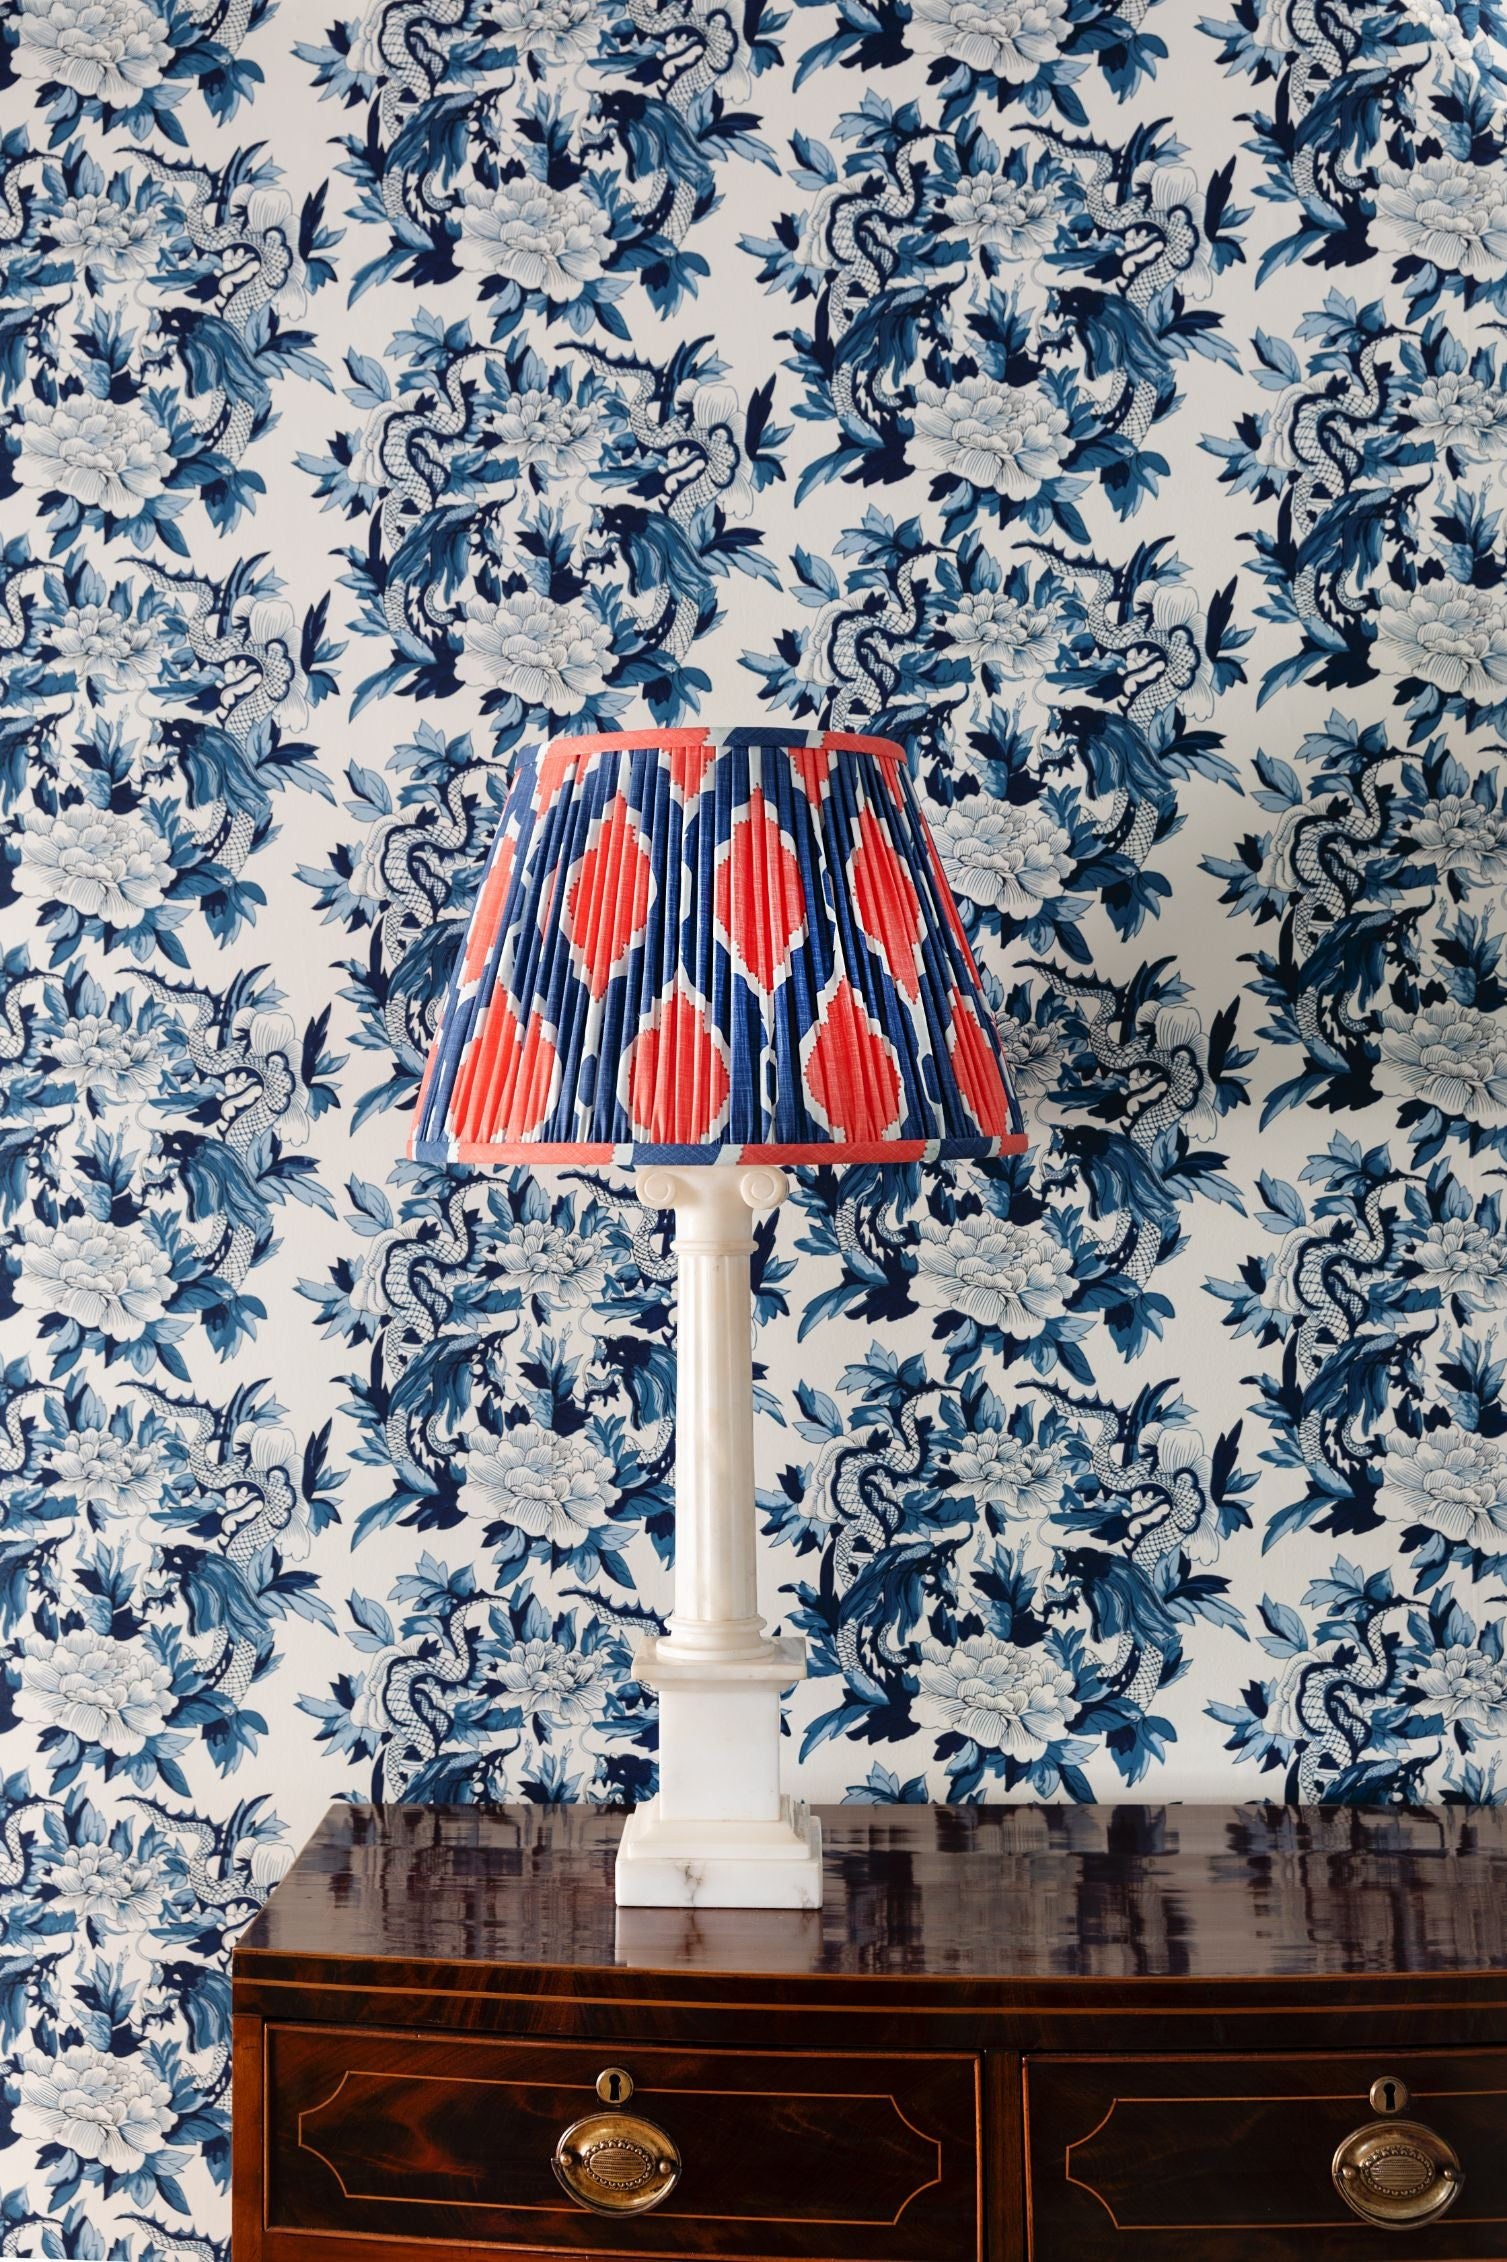 Red, white, and blue patterned lampshade.